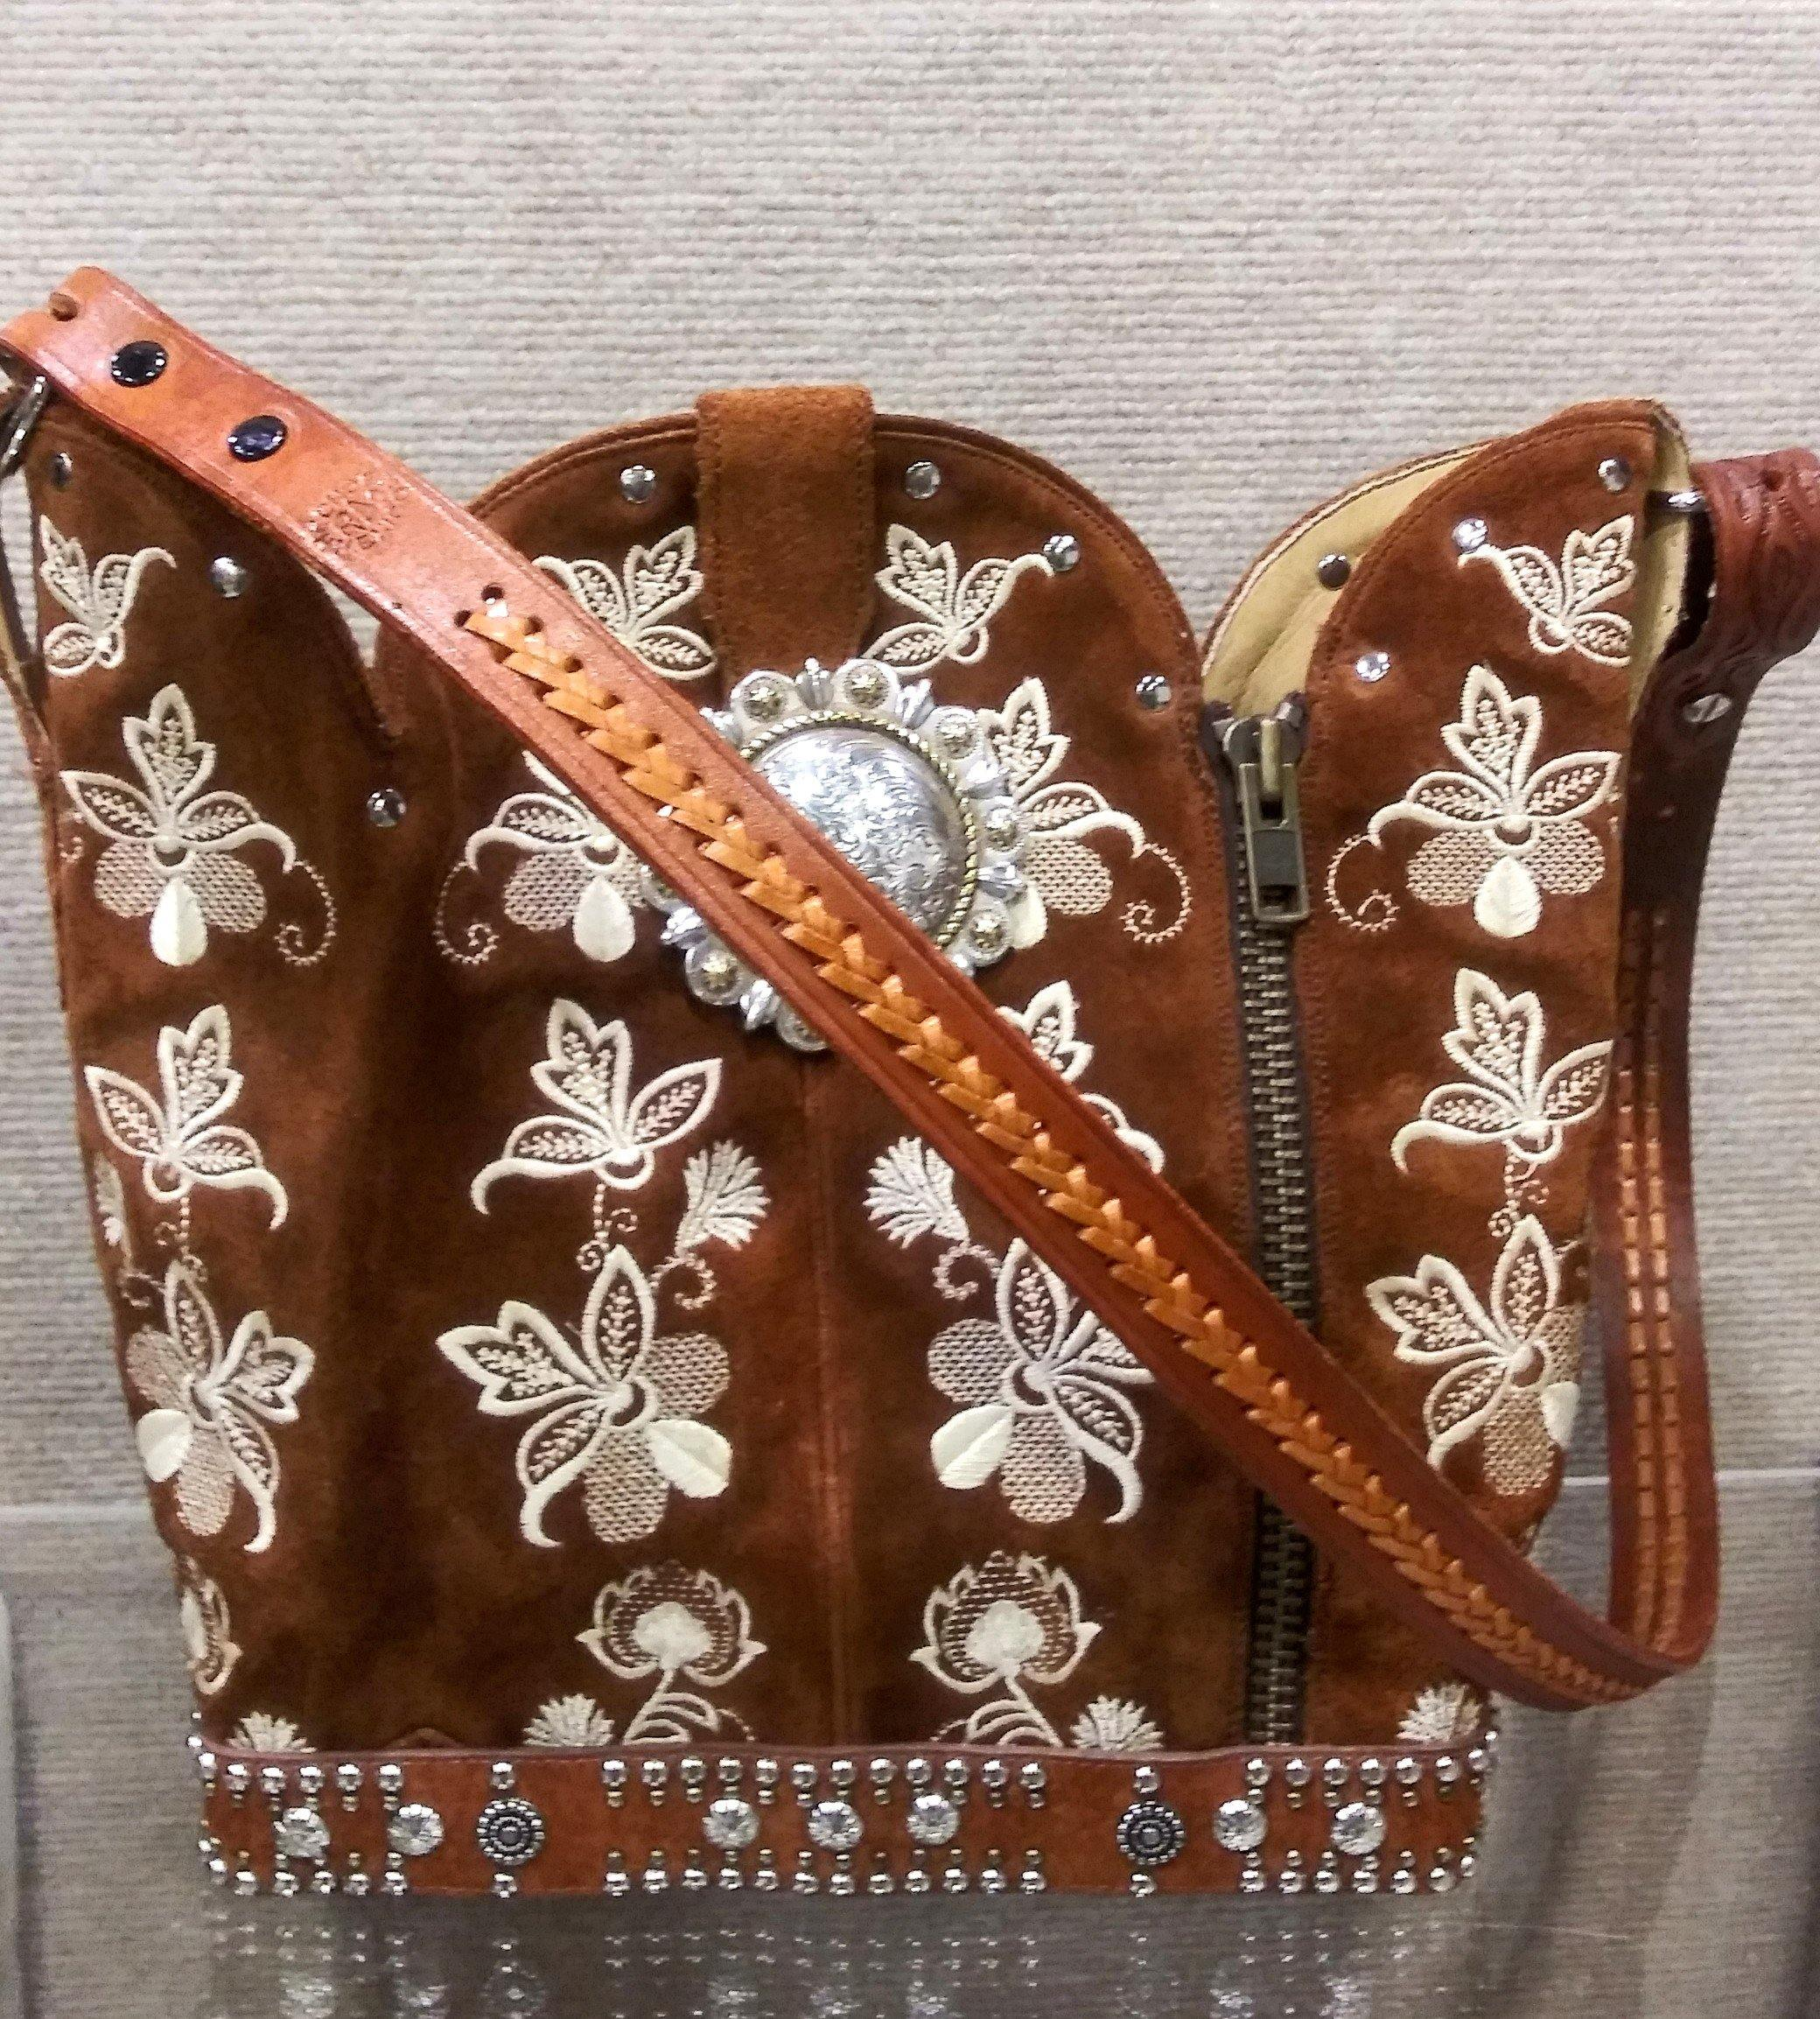 Cowboy Boot Purse - Handcrafted Western Handbag - Leather Western Purse BK36 cowboy boot purses, western fringe purse, handmade leather purses, boot purse, handmade western purse, custom leather handbags Chris Thompson Bags